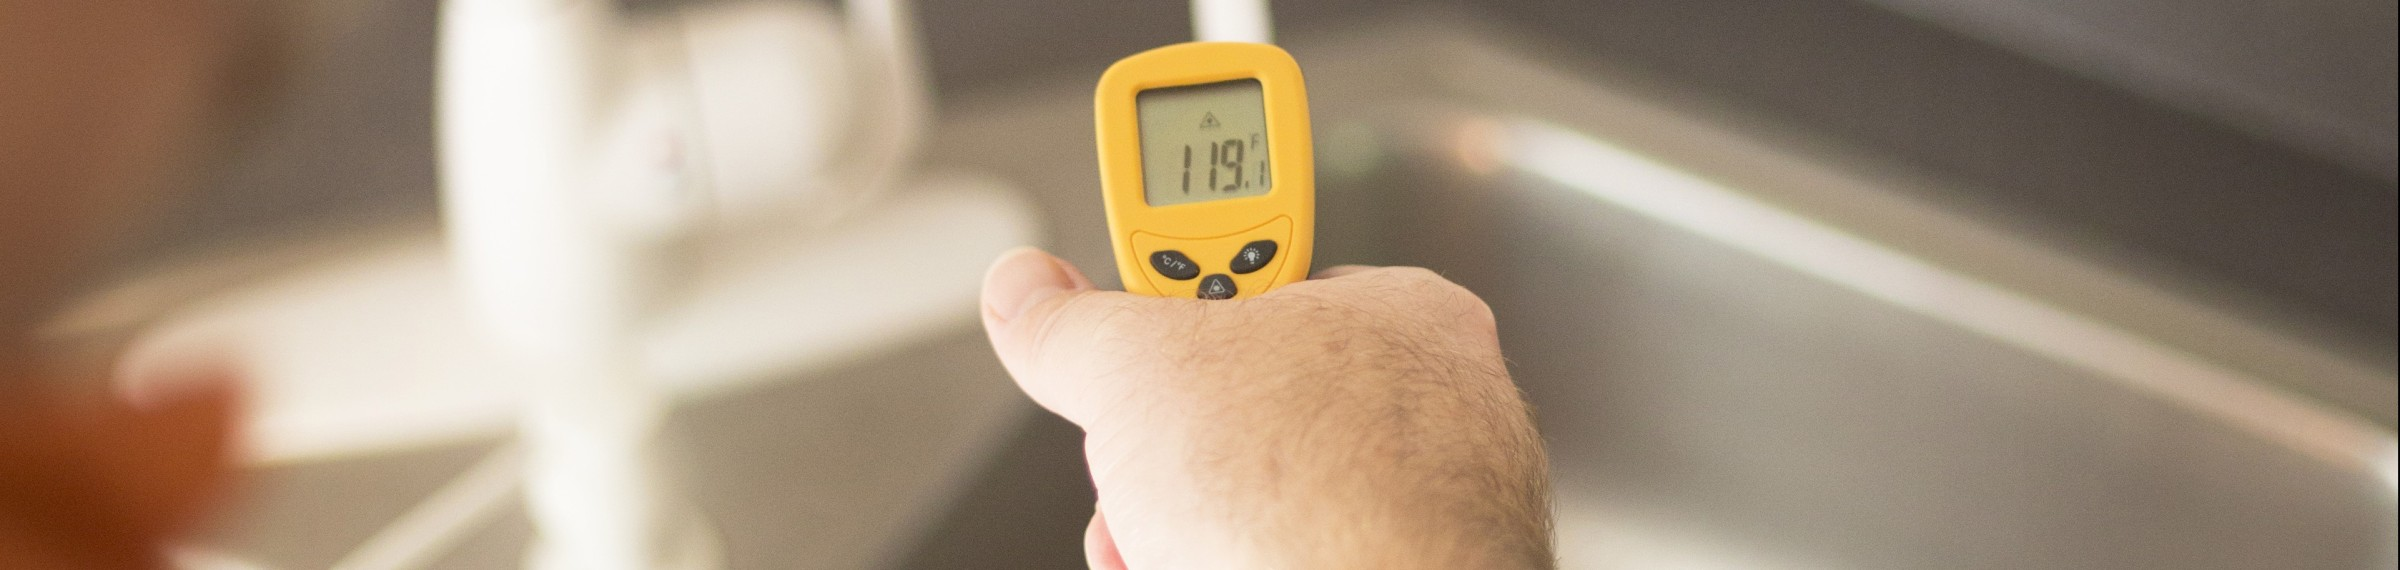 Using an Infrared Thermometer to measure hot water temperature